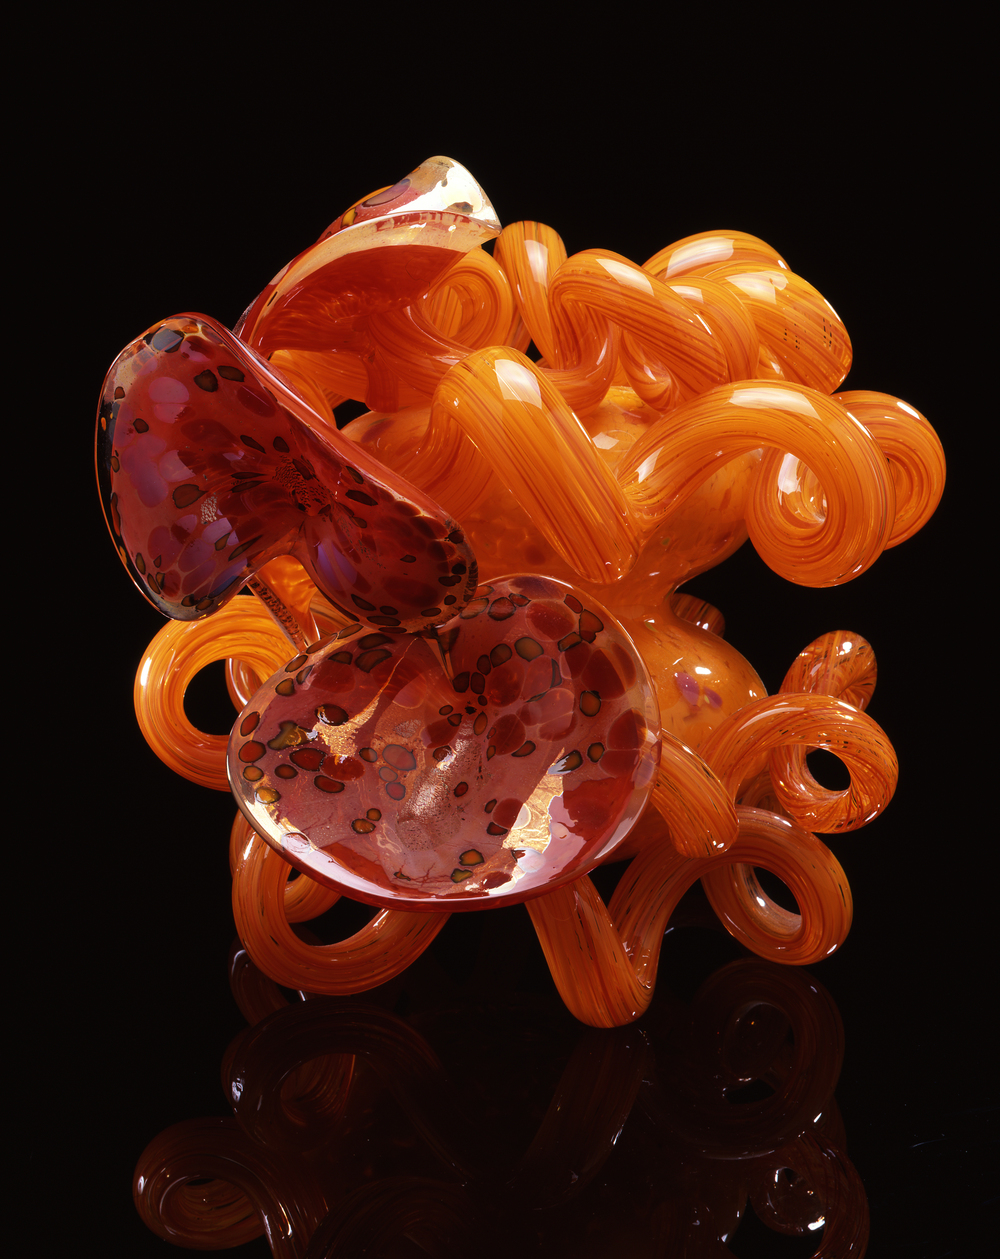 Dale Chihuly,  Cadmium Orange Coiled Venetian with Lilies  (1991, glass, 17 x 19 x 17 inches)